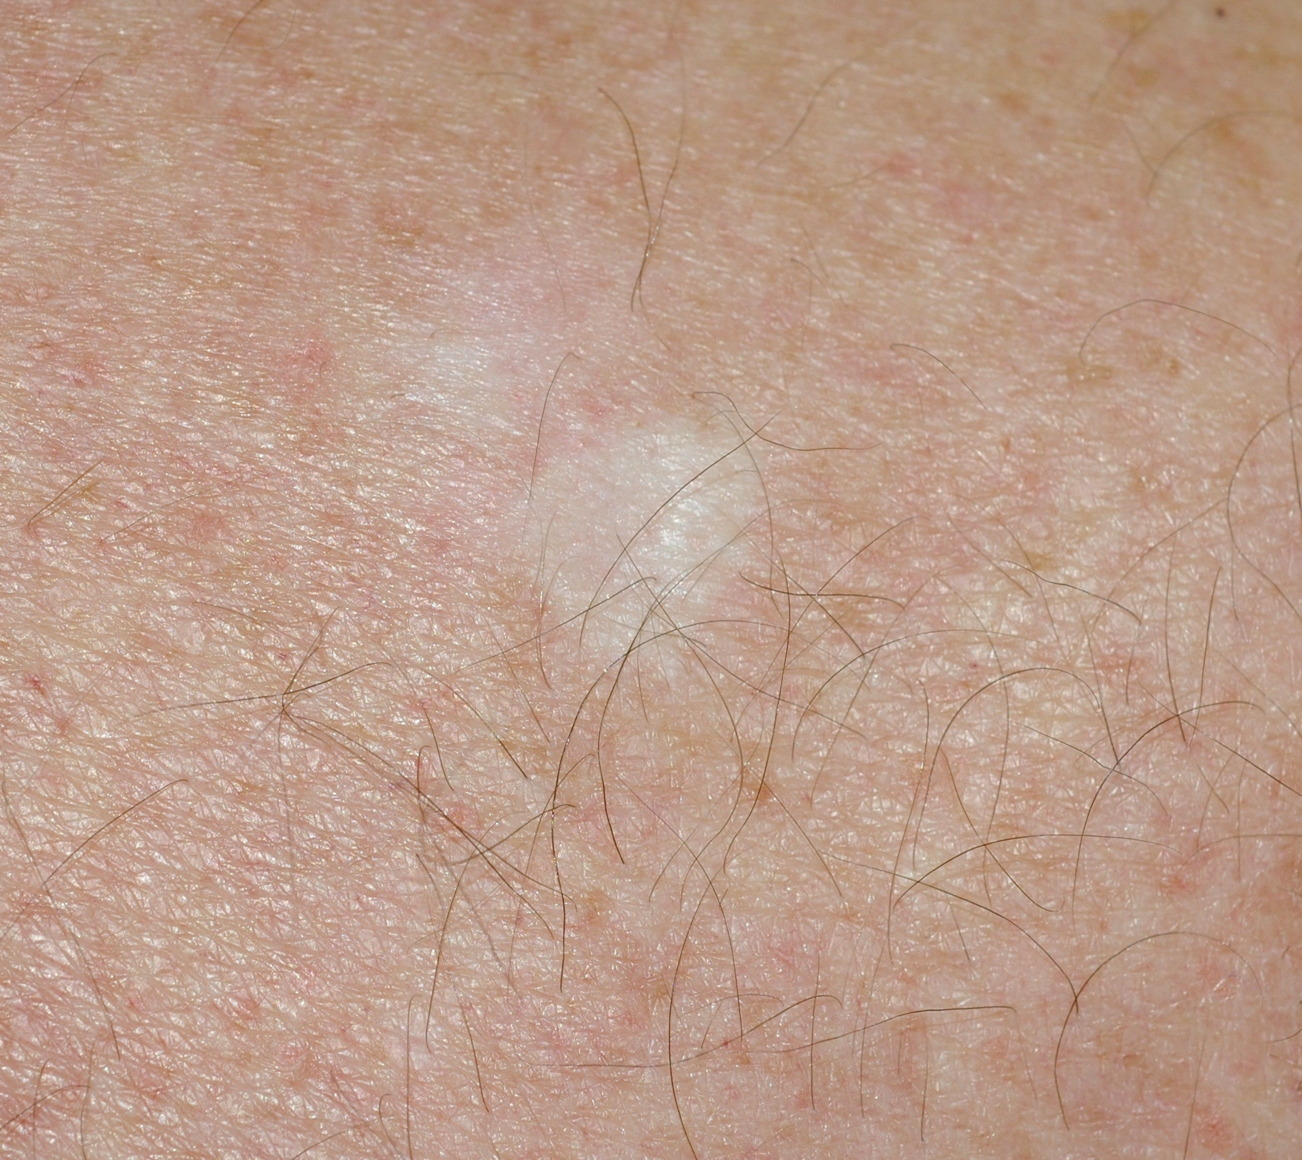 Local Reactions To Imiquimod In The Treatment Of Basal Cell Carcinoma